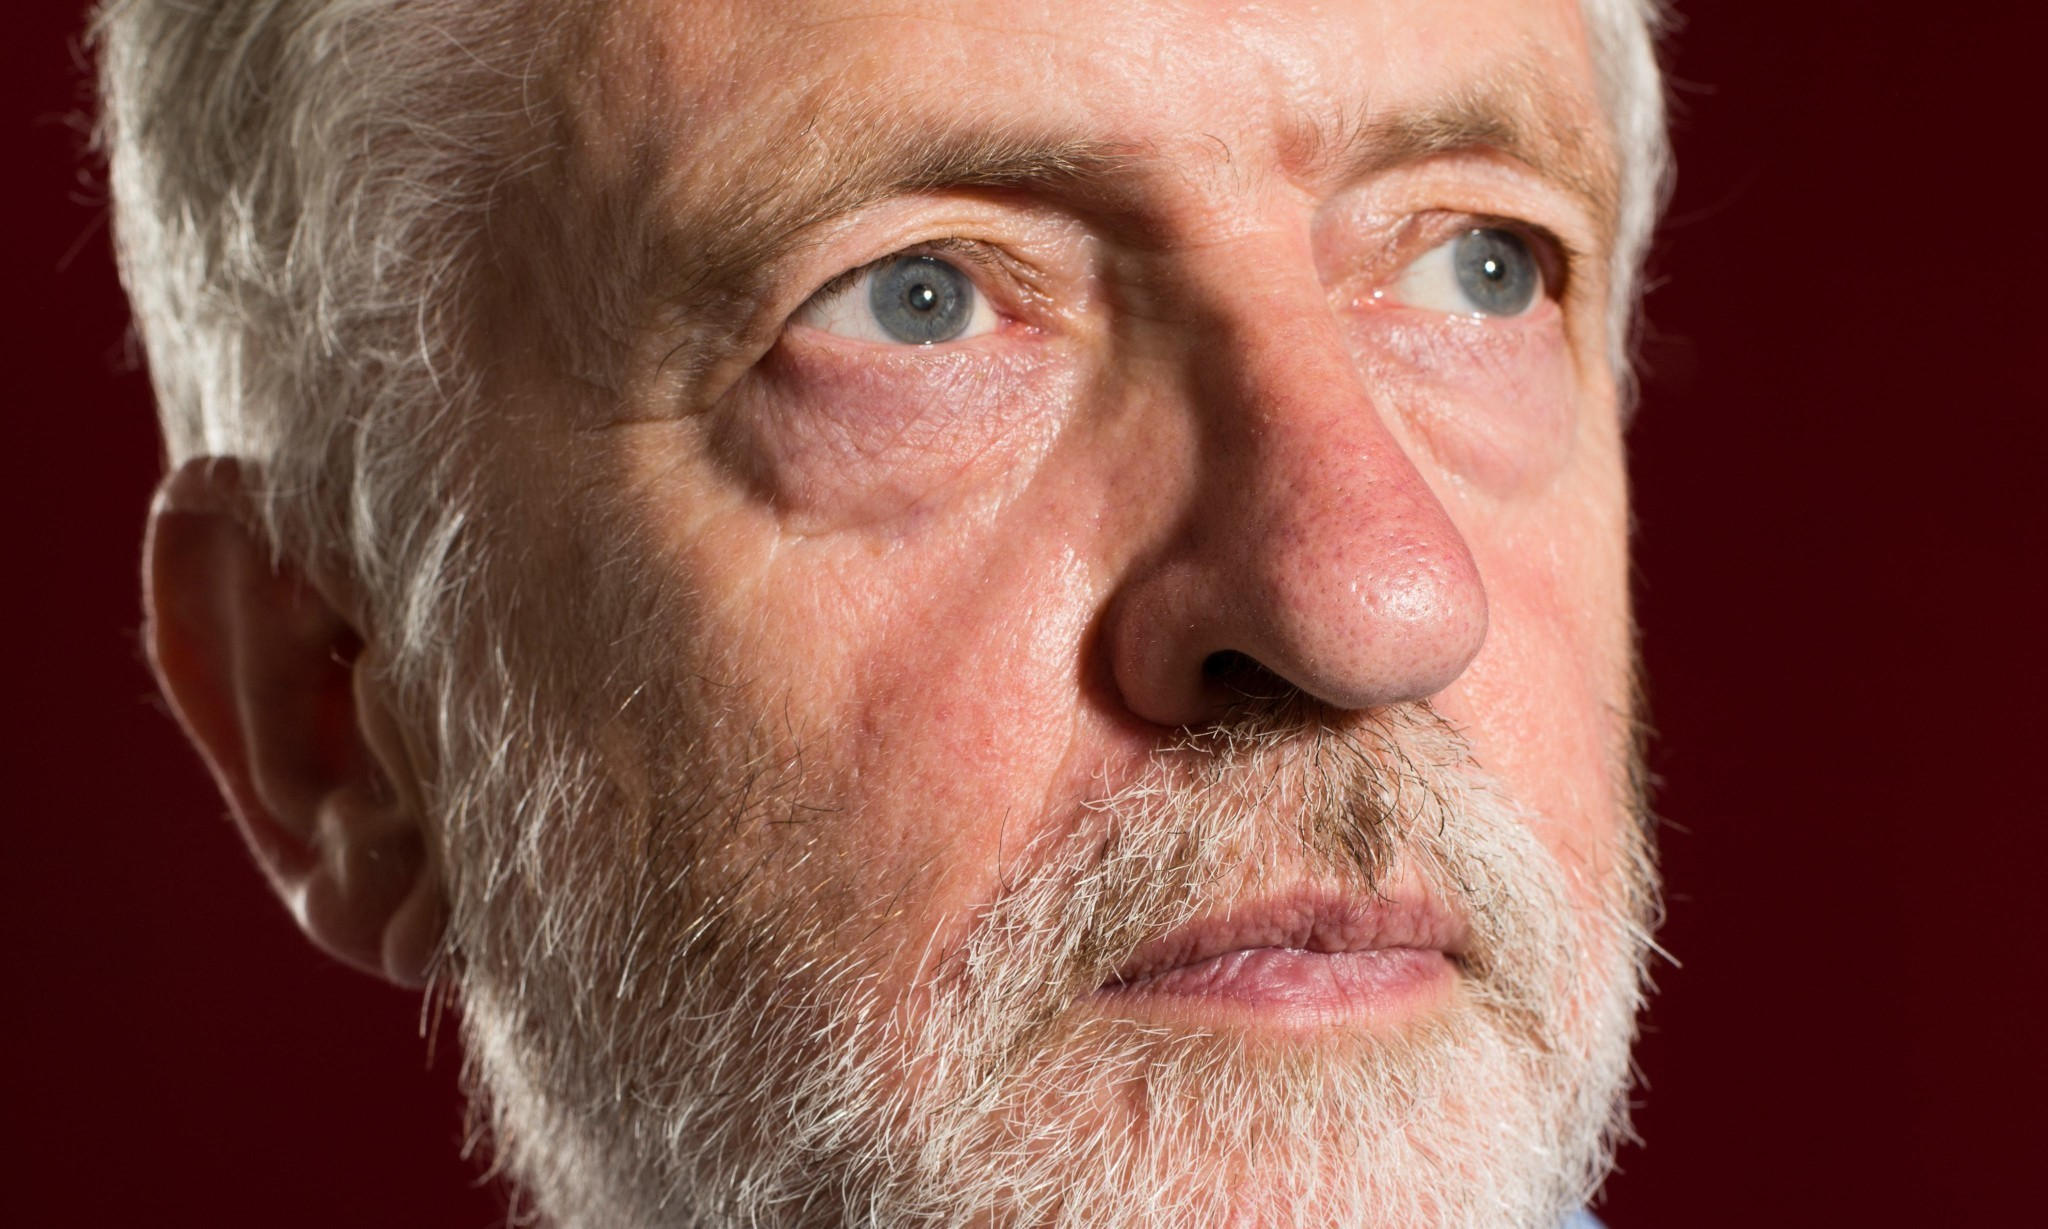 Jeremy Corbyn: 'People say I should be tougher. But it's not my style'